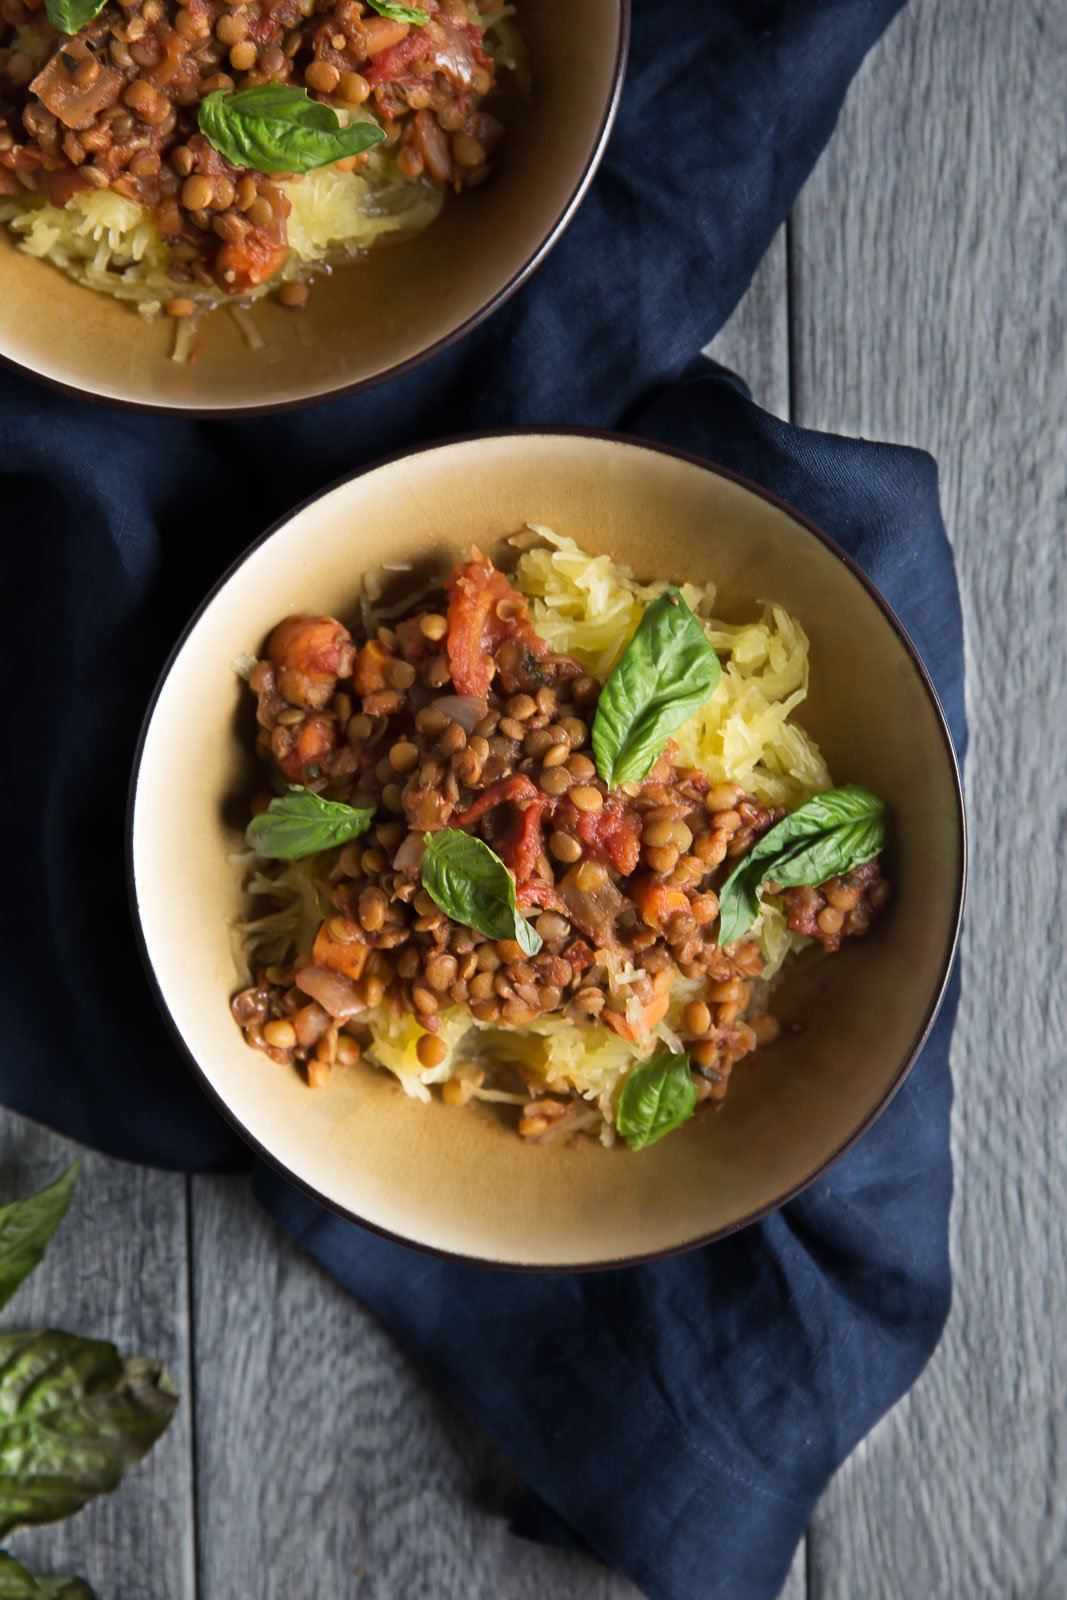 lentil sloppy joes over spaghetti squash in a bowl